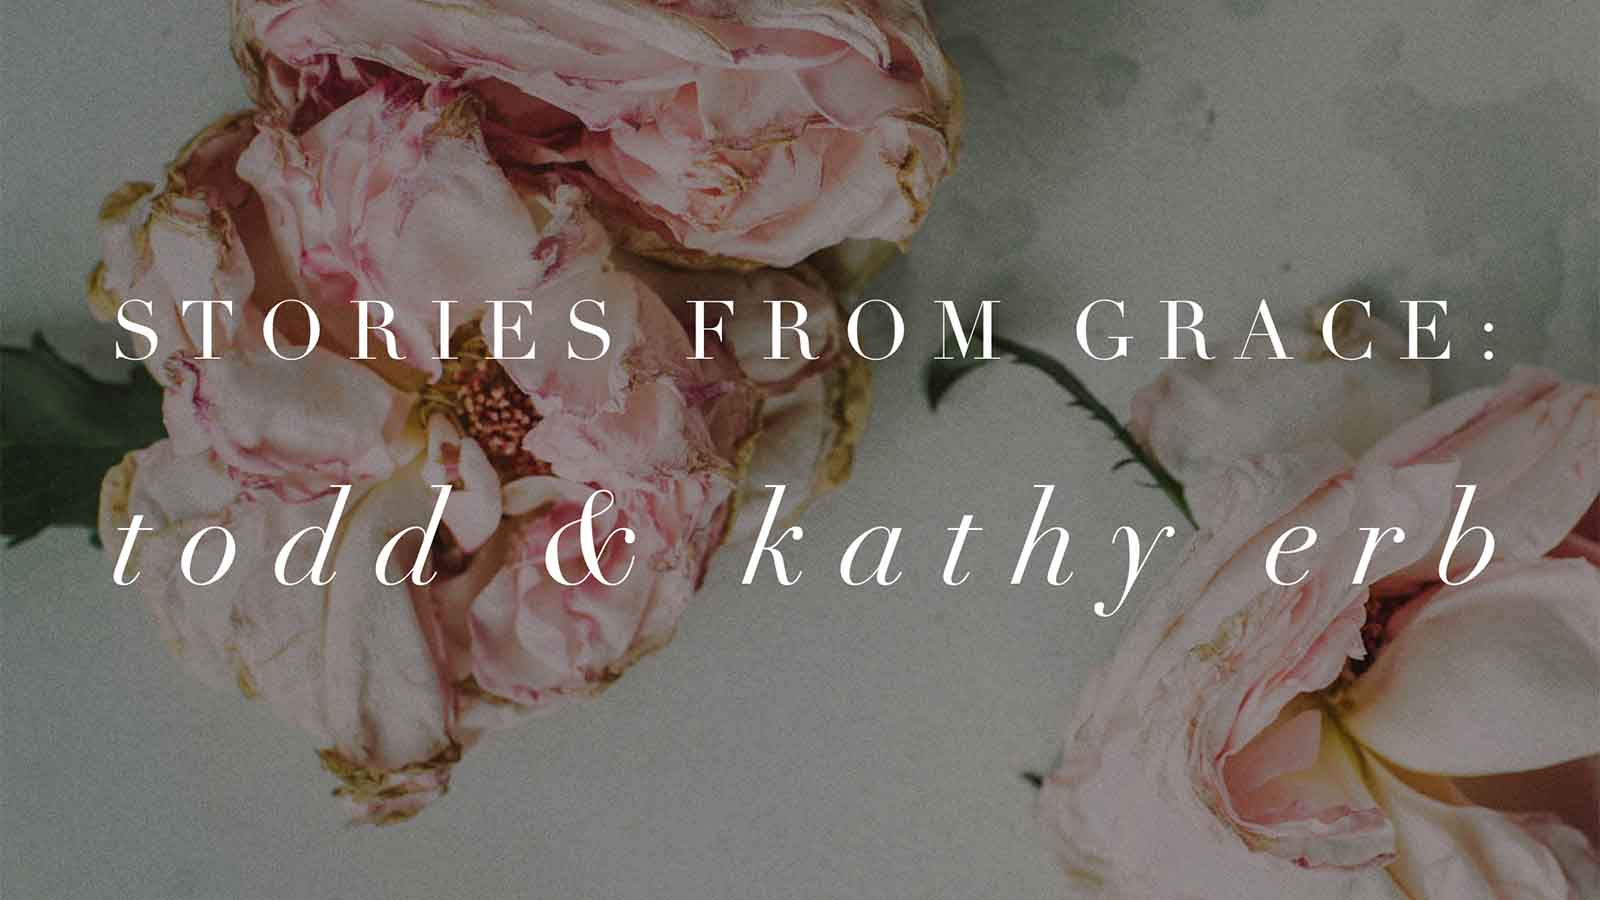 Stories from Grace: Todd & Kathy Erb